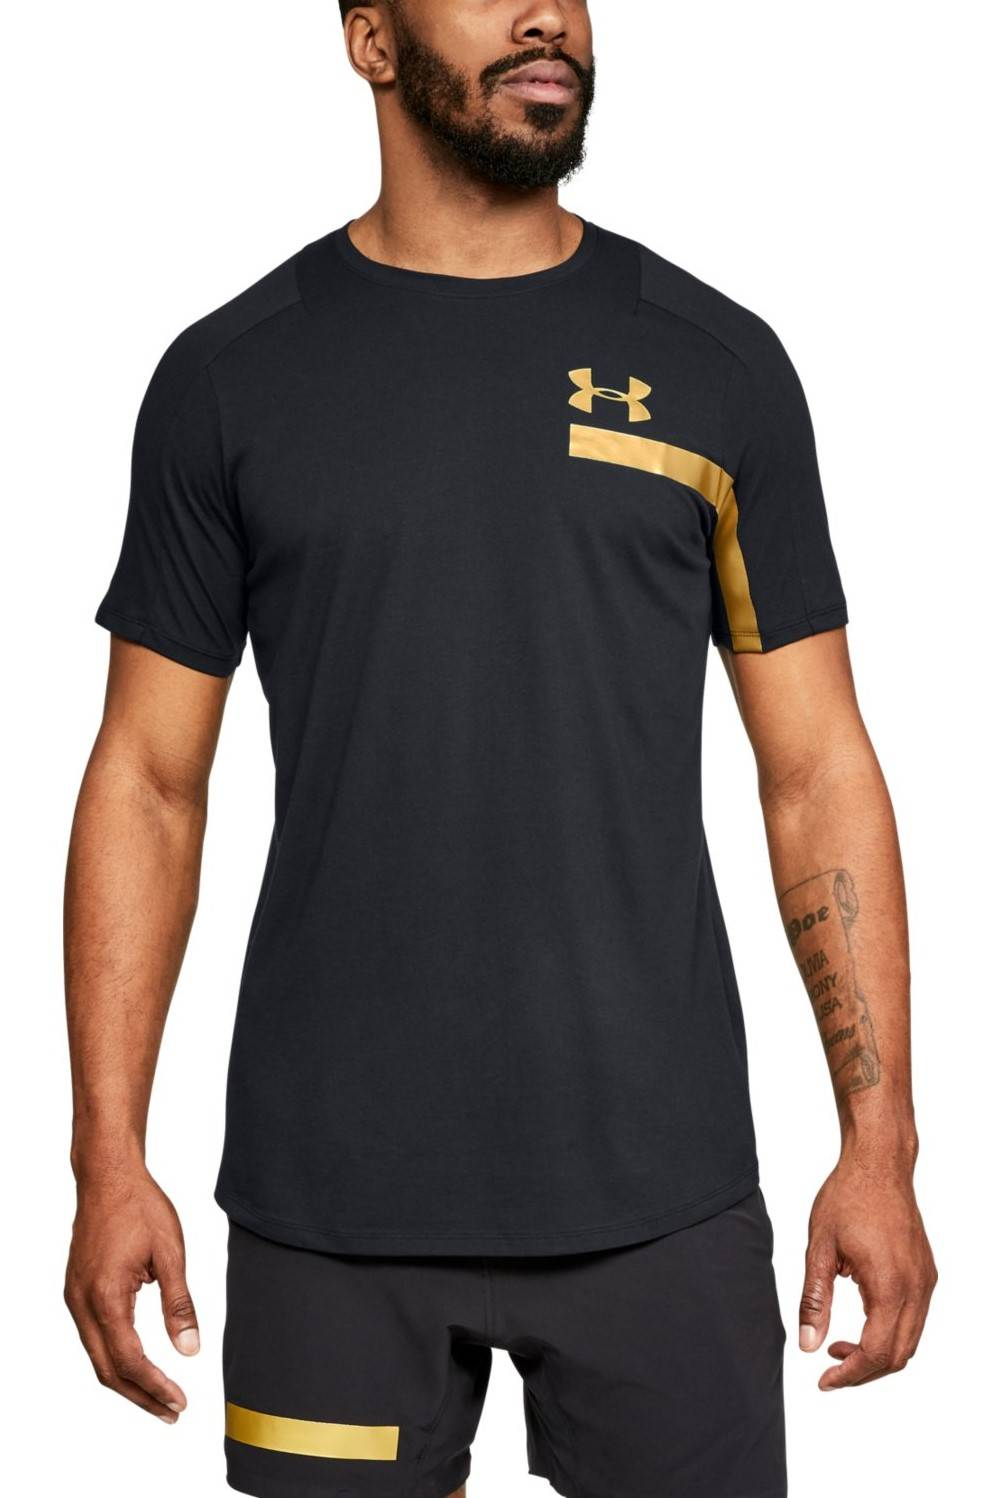 Under Armour black men's sports shirt by Perpetl SS Graphic